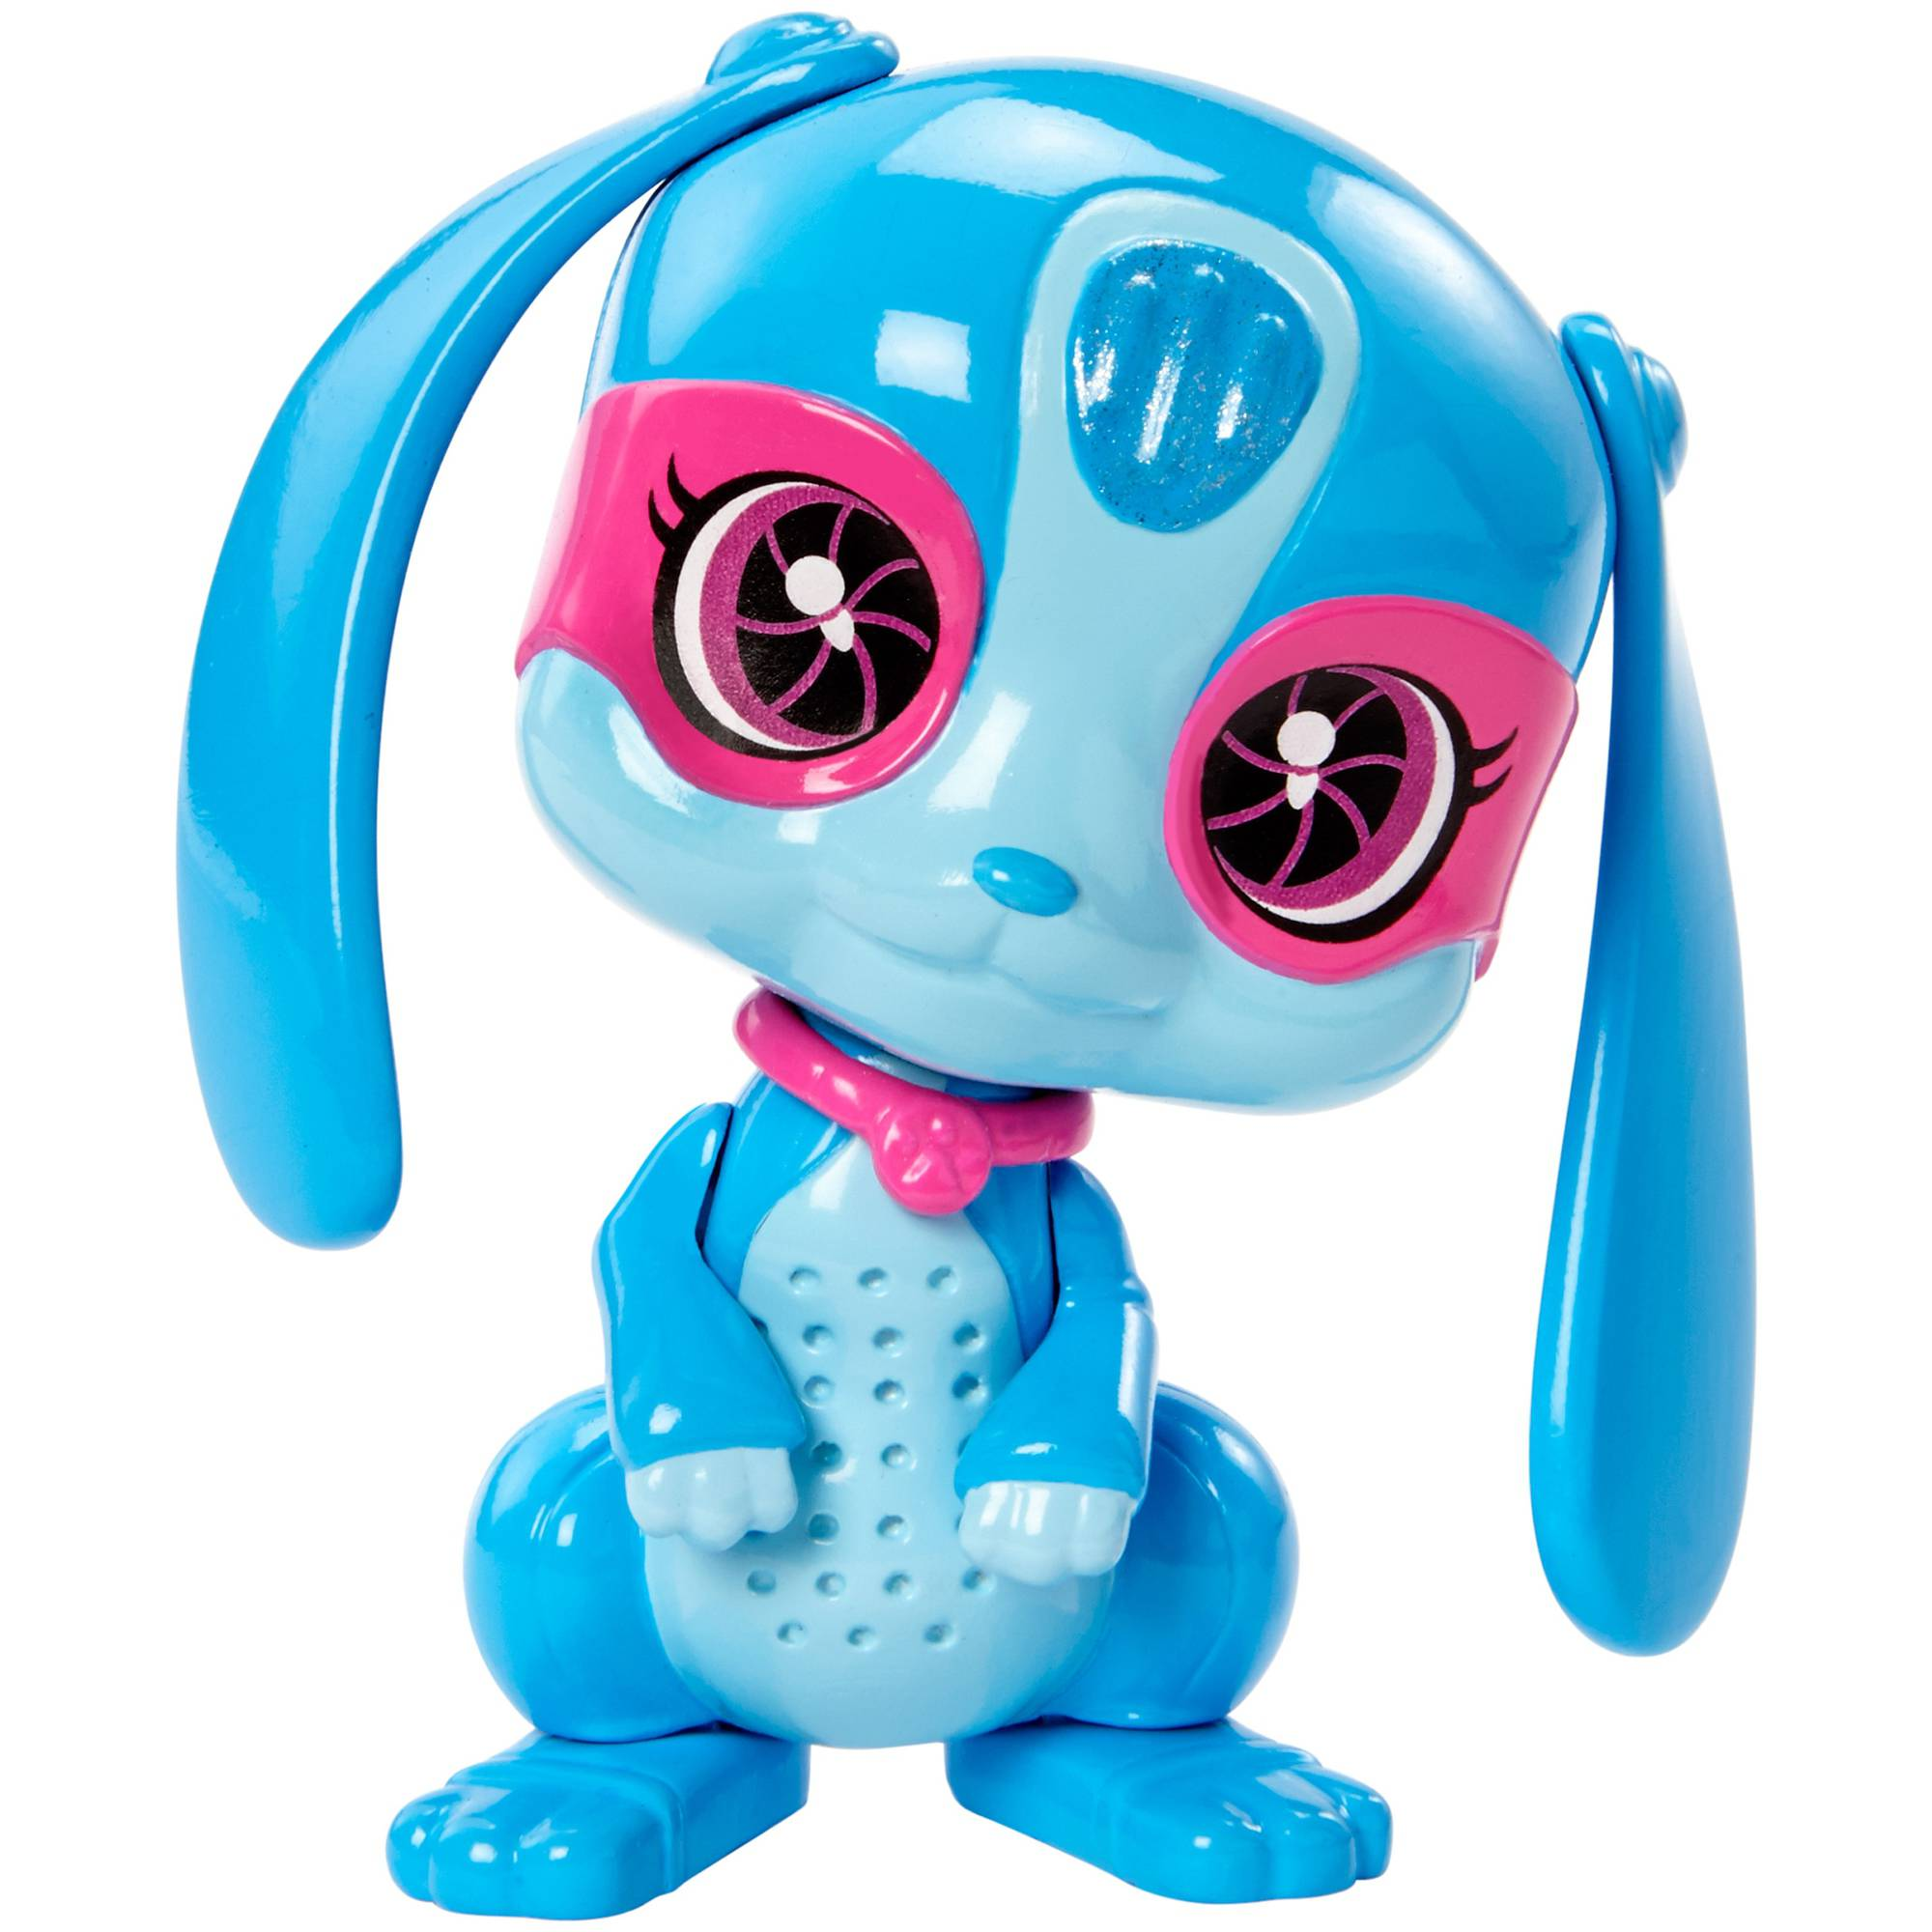 Barbie Spy Squad Bunny Robotic Pet Techbot Figures